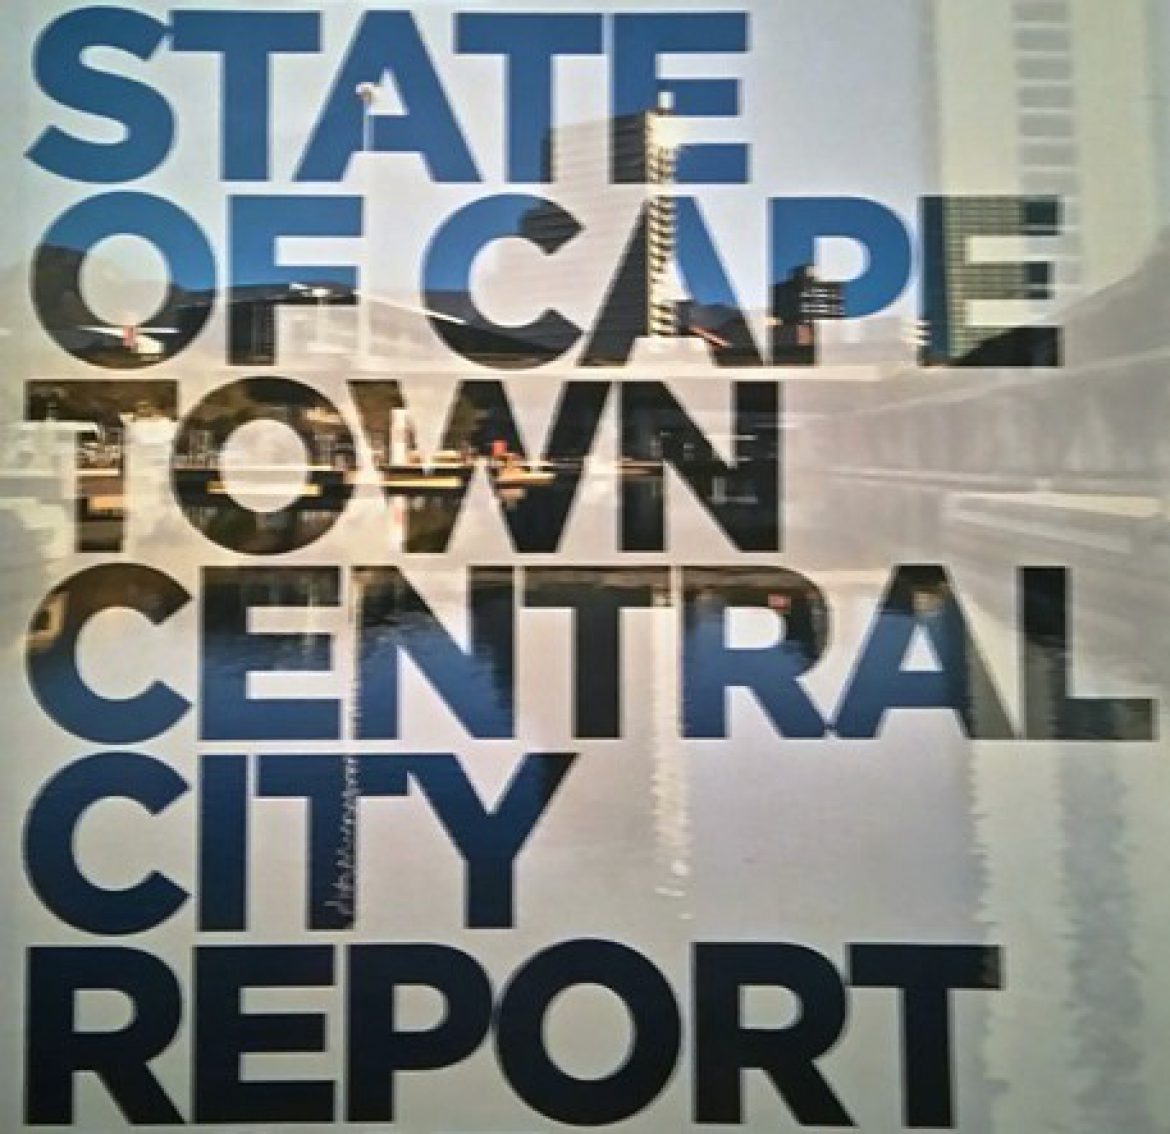 Cape Town property values in CBD soar – State of the Central City Report 2015 launched in Business Day